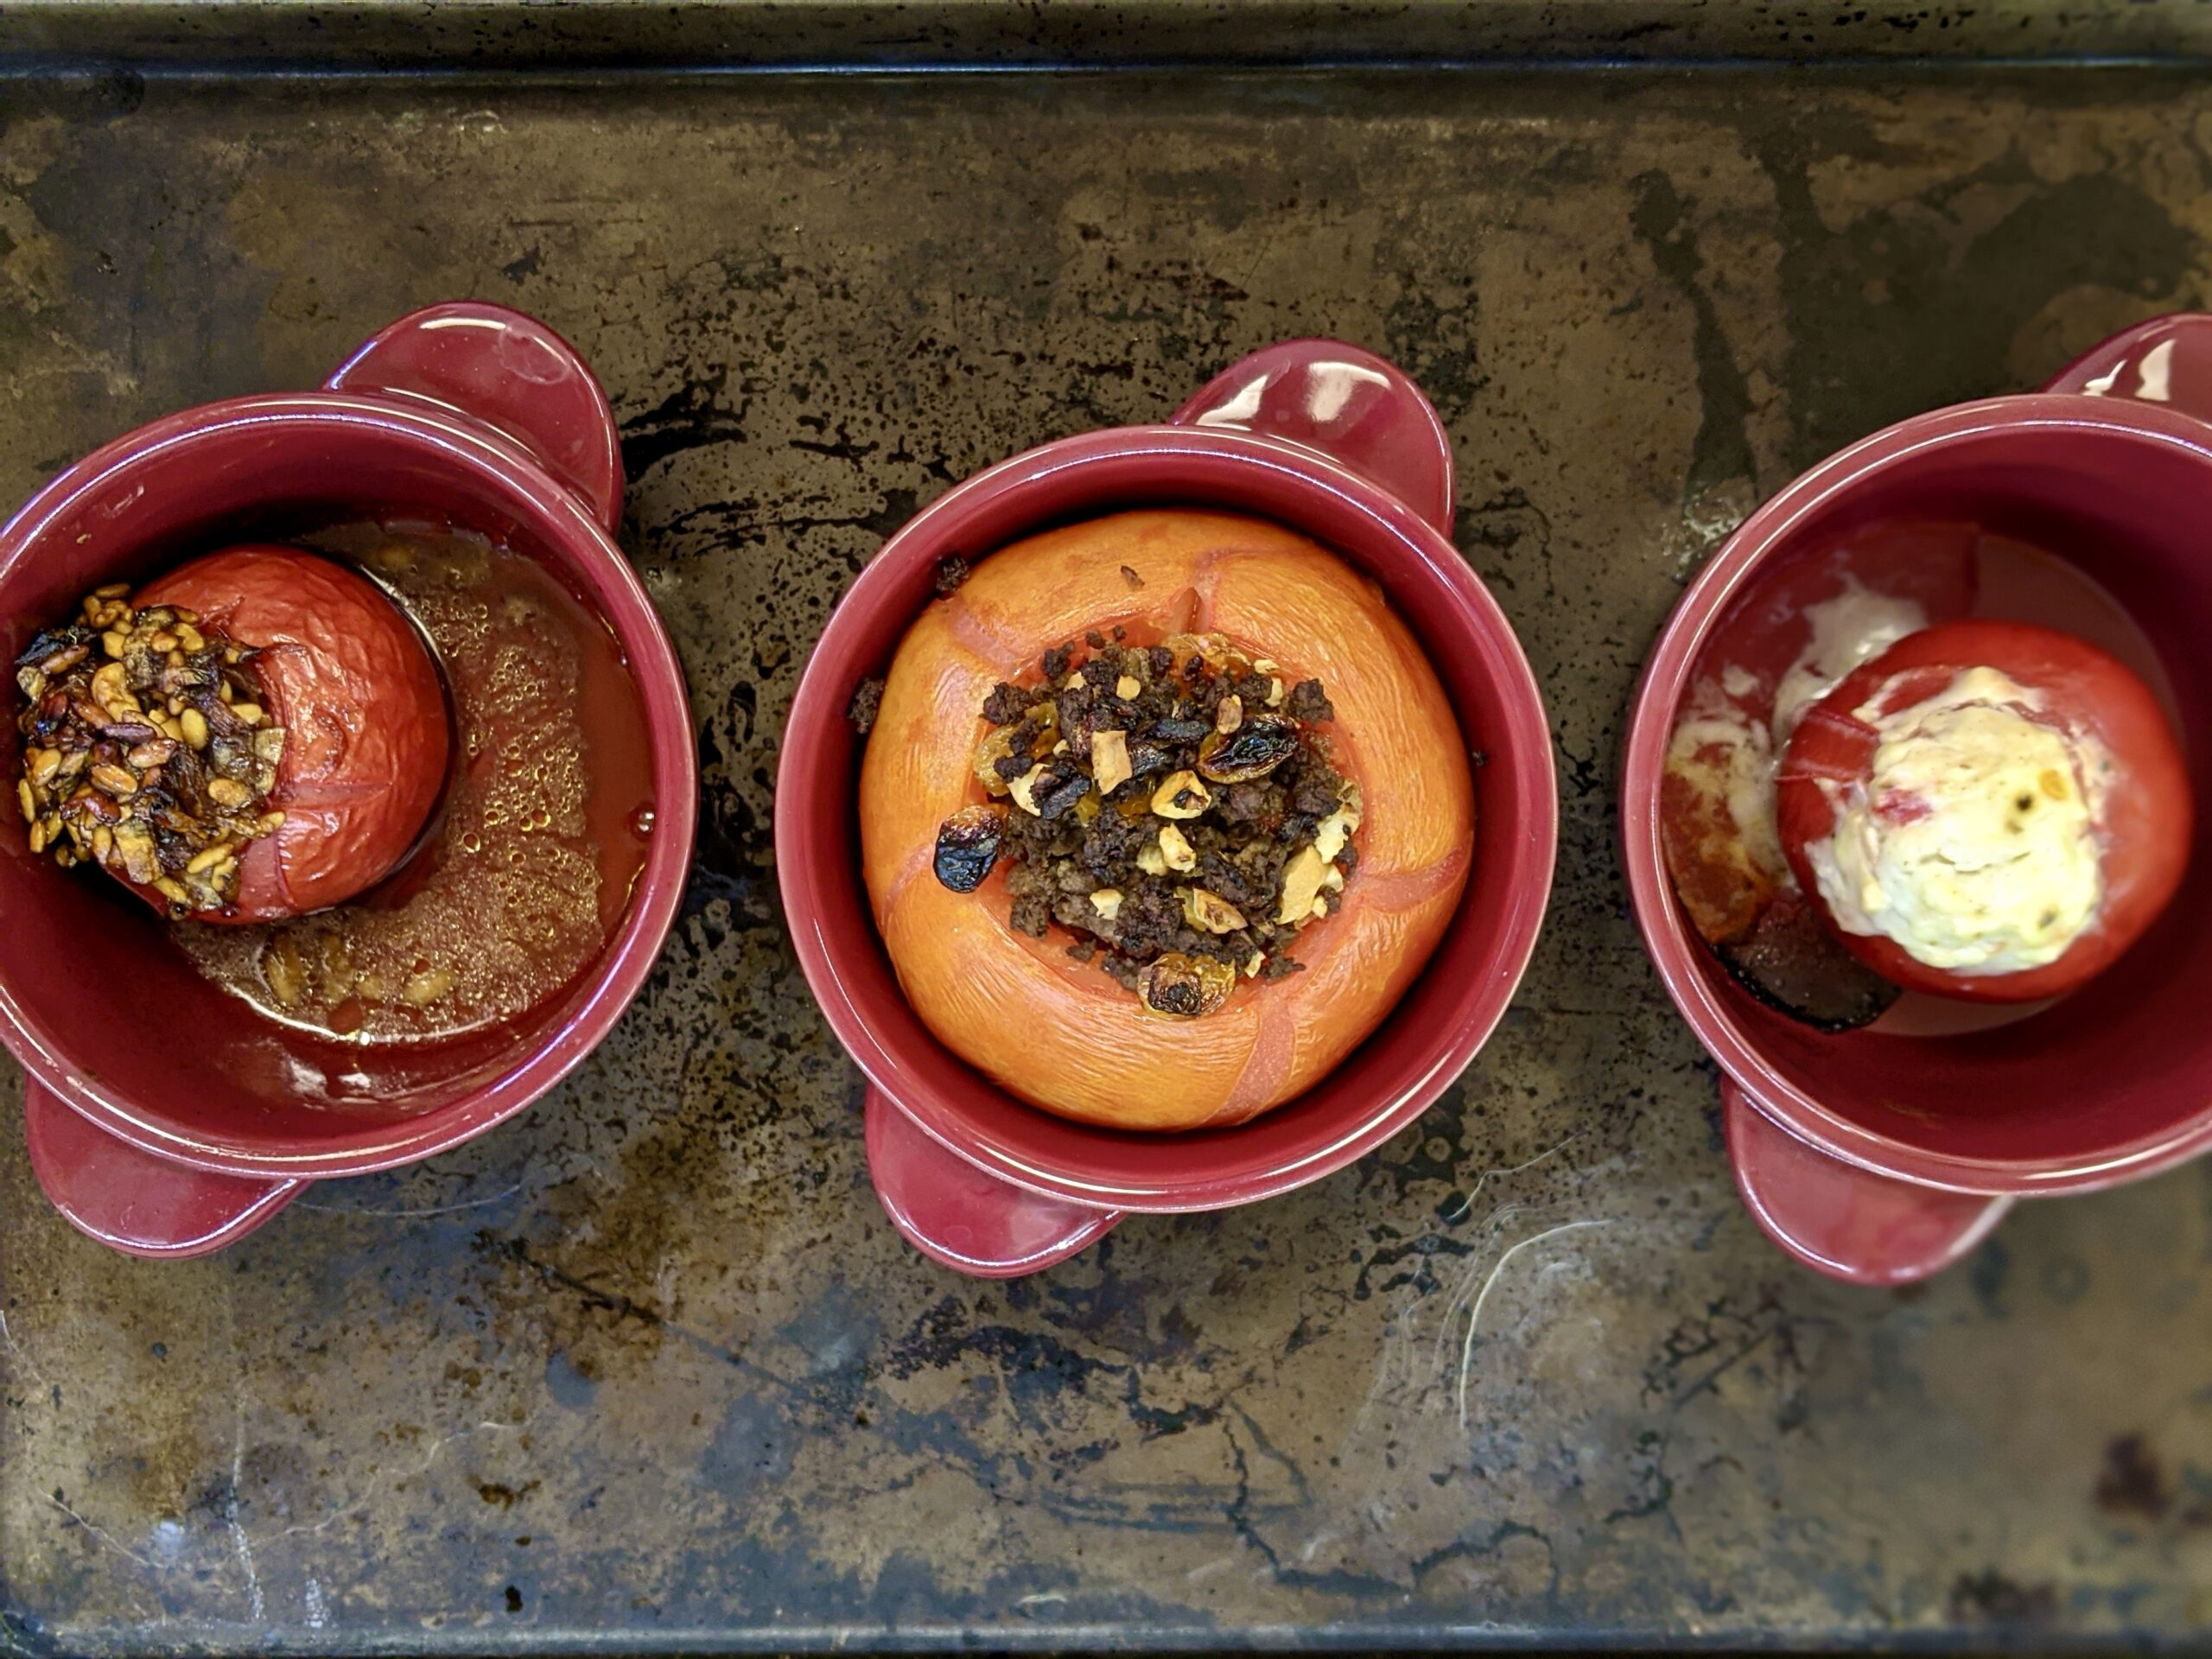 Made In Marrow - Meal 94 - A Trio of Tomatoes